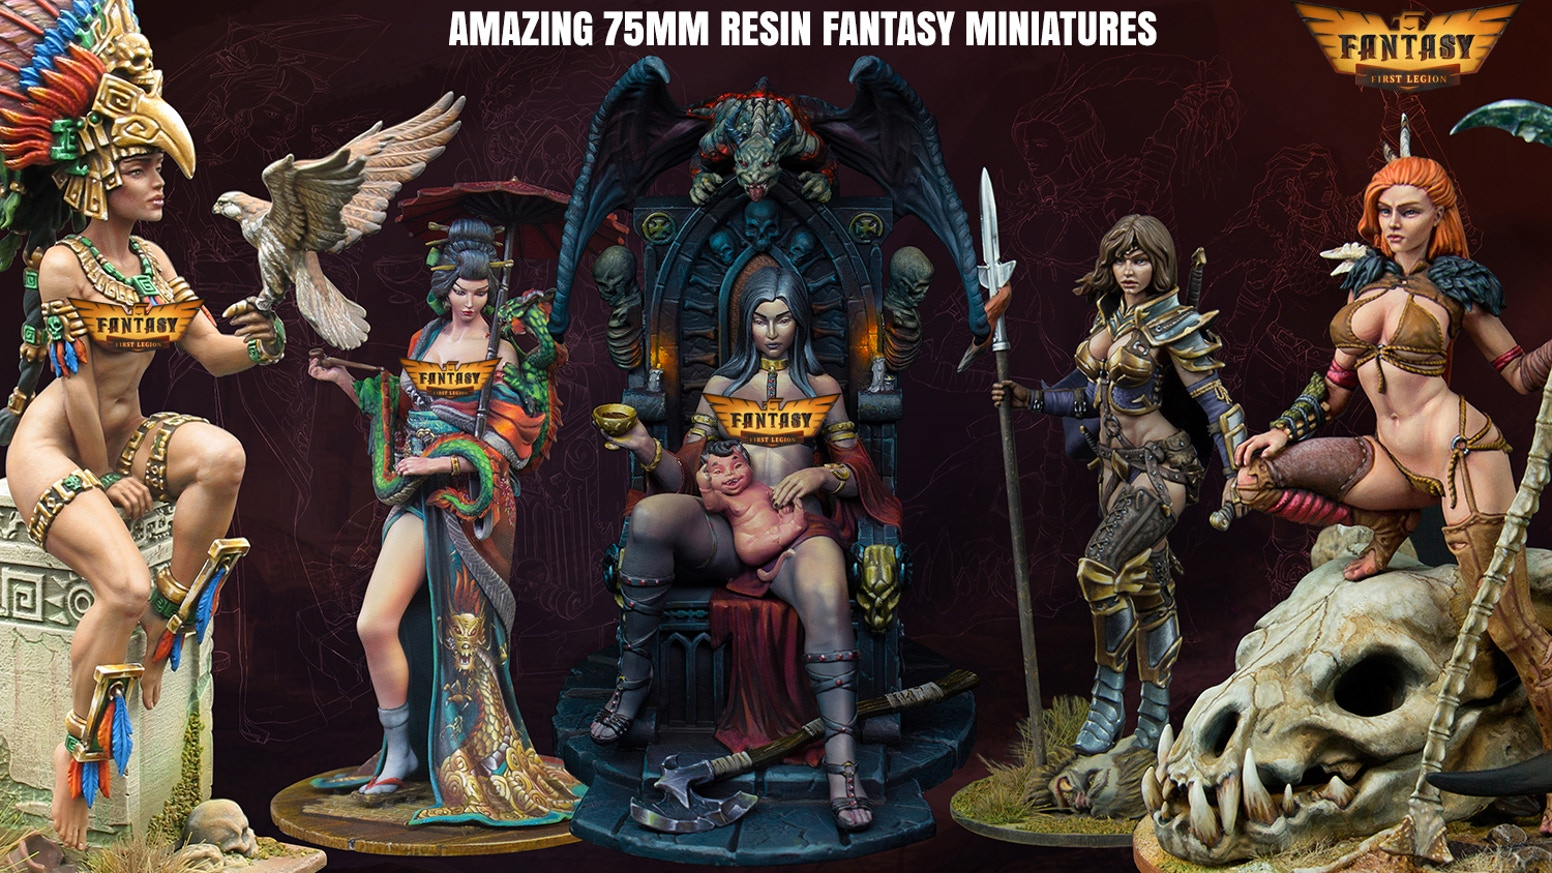 "Incredibly Sculpted and Cast 75mm Resin ""Femmes Fatales"" Provocative Fantasy Figure Kits for Collectors and Artists"